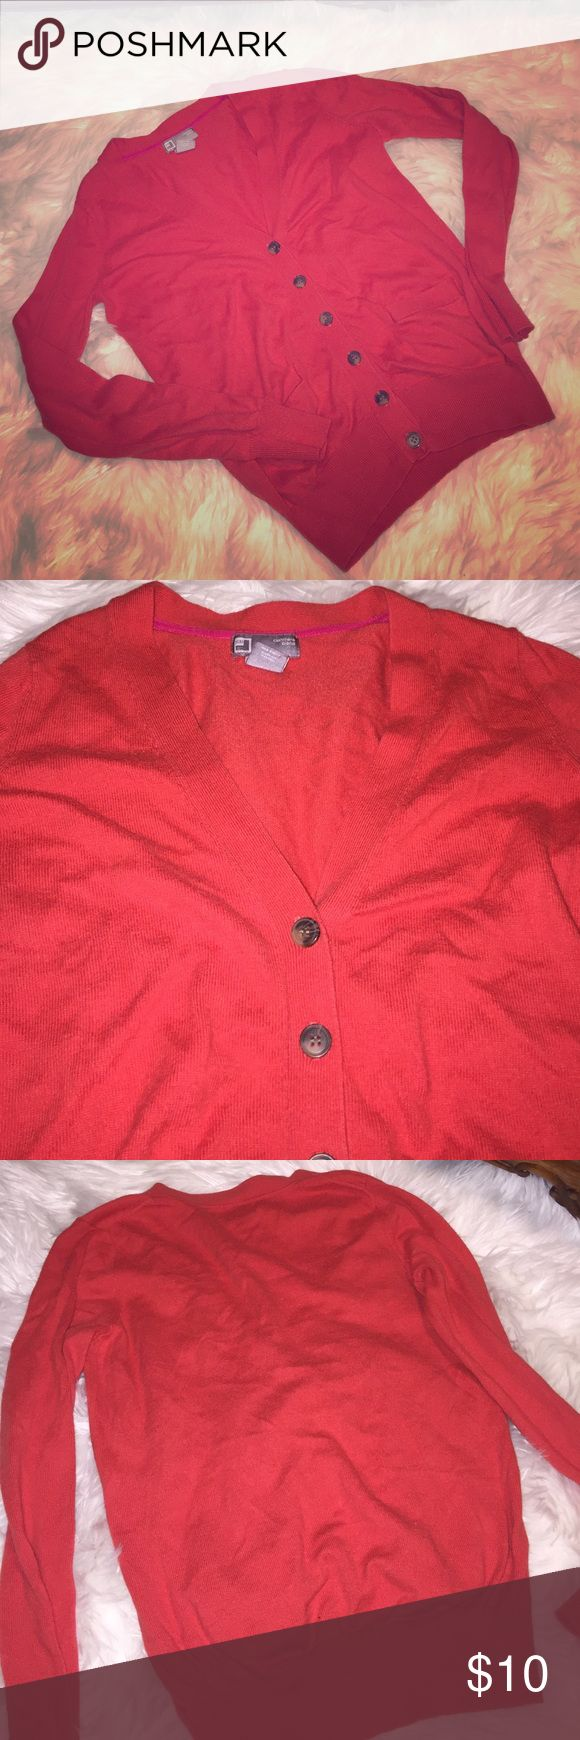 Red V-neck cardigan sweater, long sleeve cashmere Great for the fall season 🍁🍂🌾 red cardigan cashmere blend sweater. 🛍 I am willing to trade this item Tops Camisoles